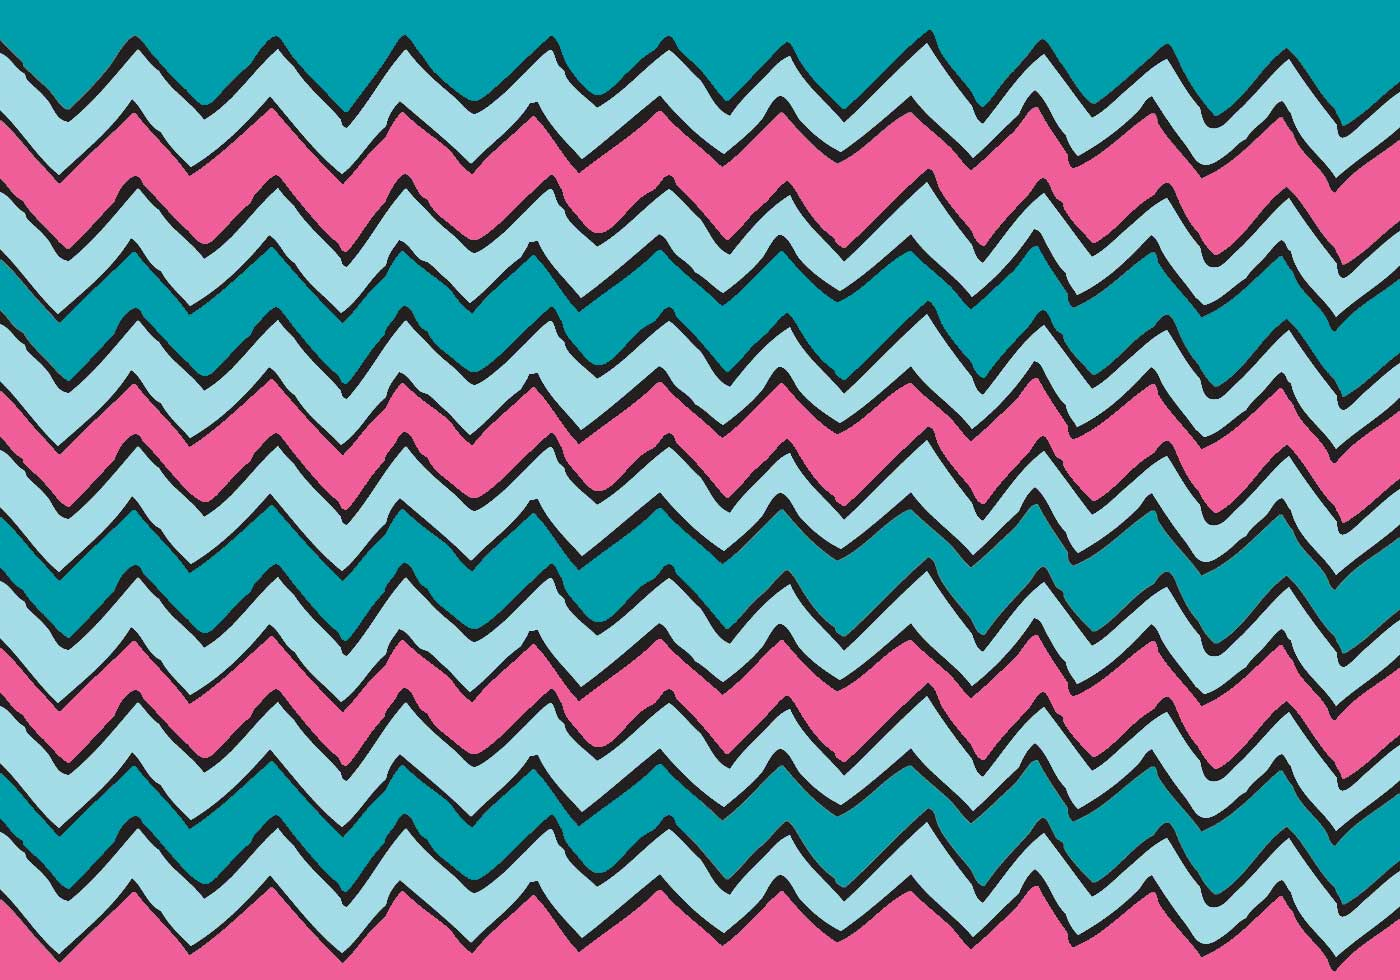 how to make a chevron template - free chevron pattern vector download free vector art